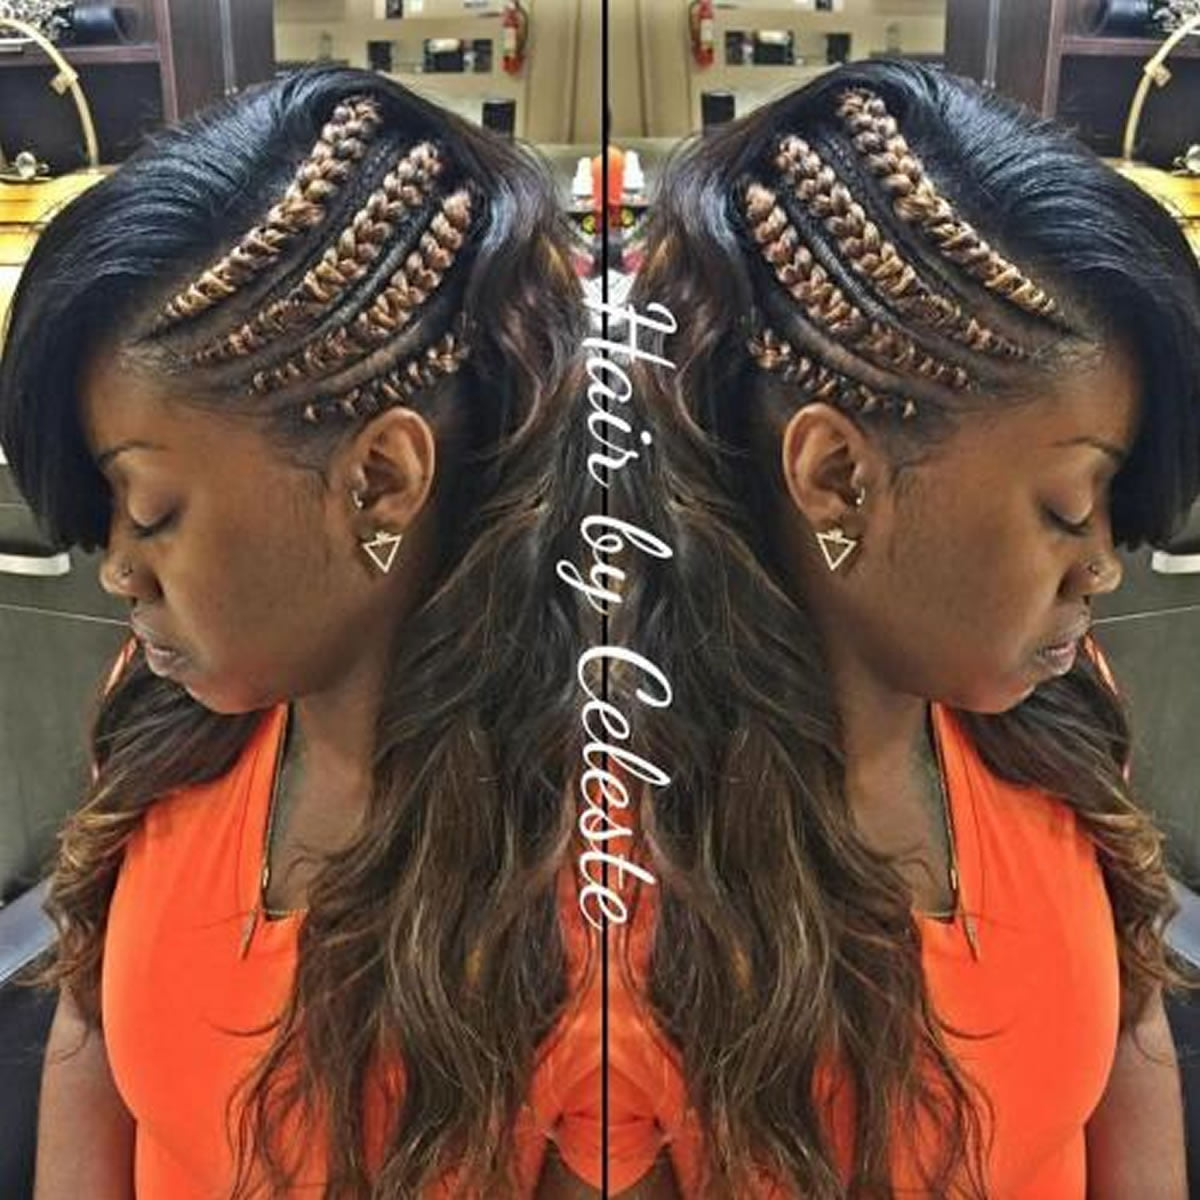 37 Wedding Hairstyles For Black Women To Drool Over 2017: 25 Incredibly Nice Ghana Braids Hairstyles For All